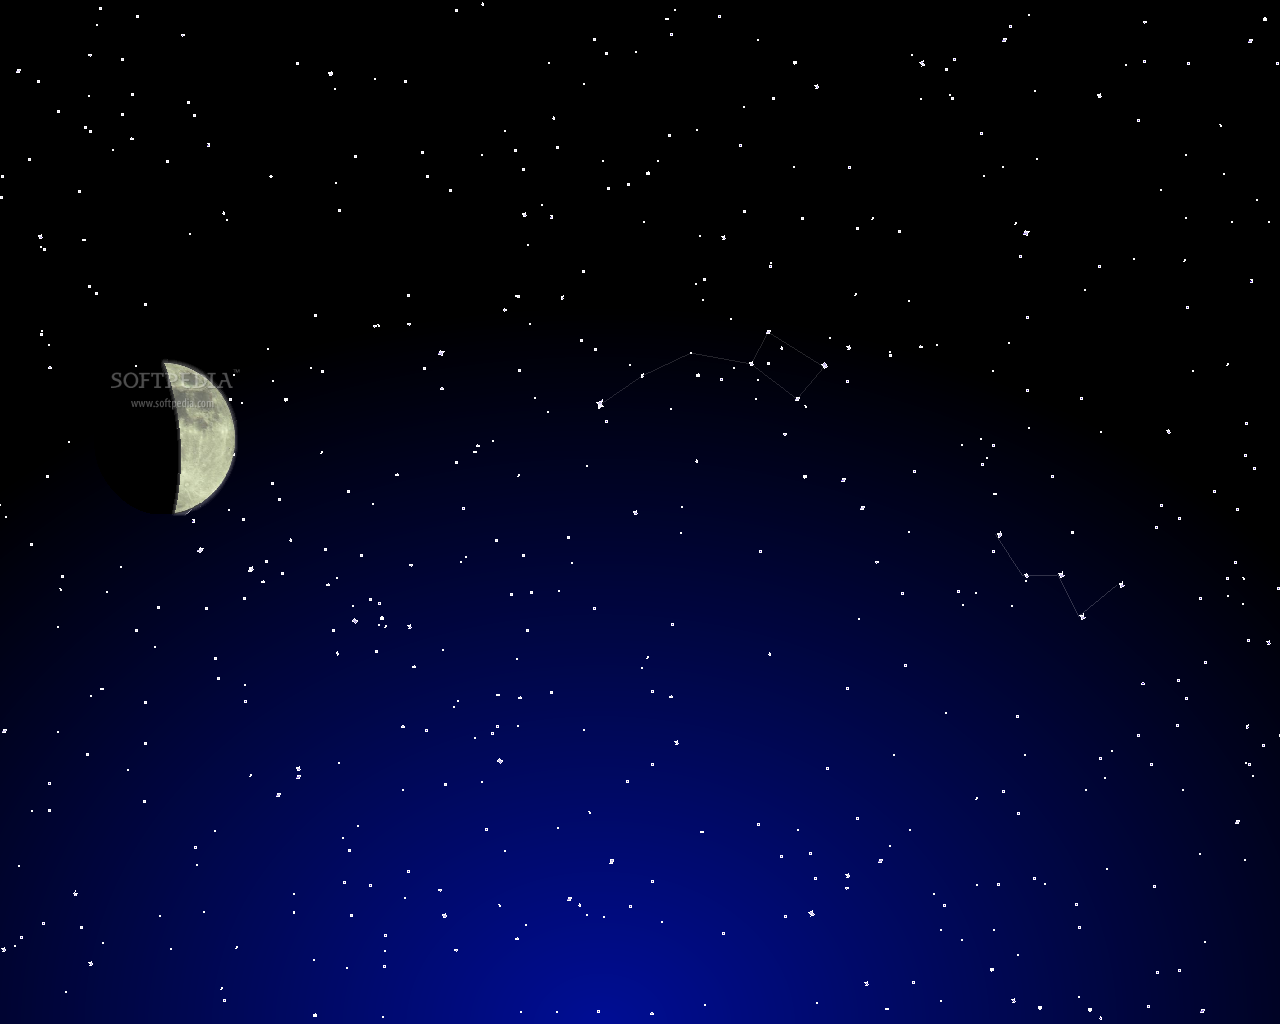 Phases of the Moon   Animated Wallpaper   This is the image displayed 1280x1024